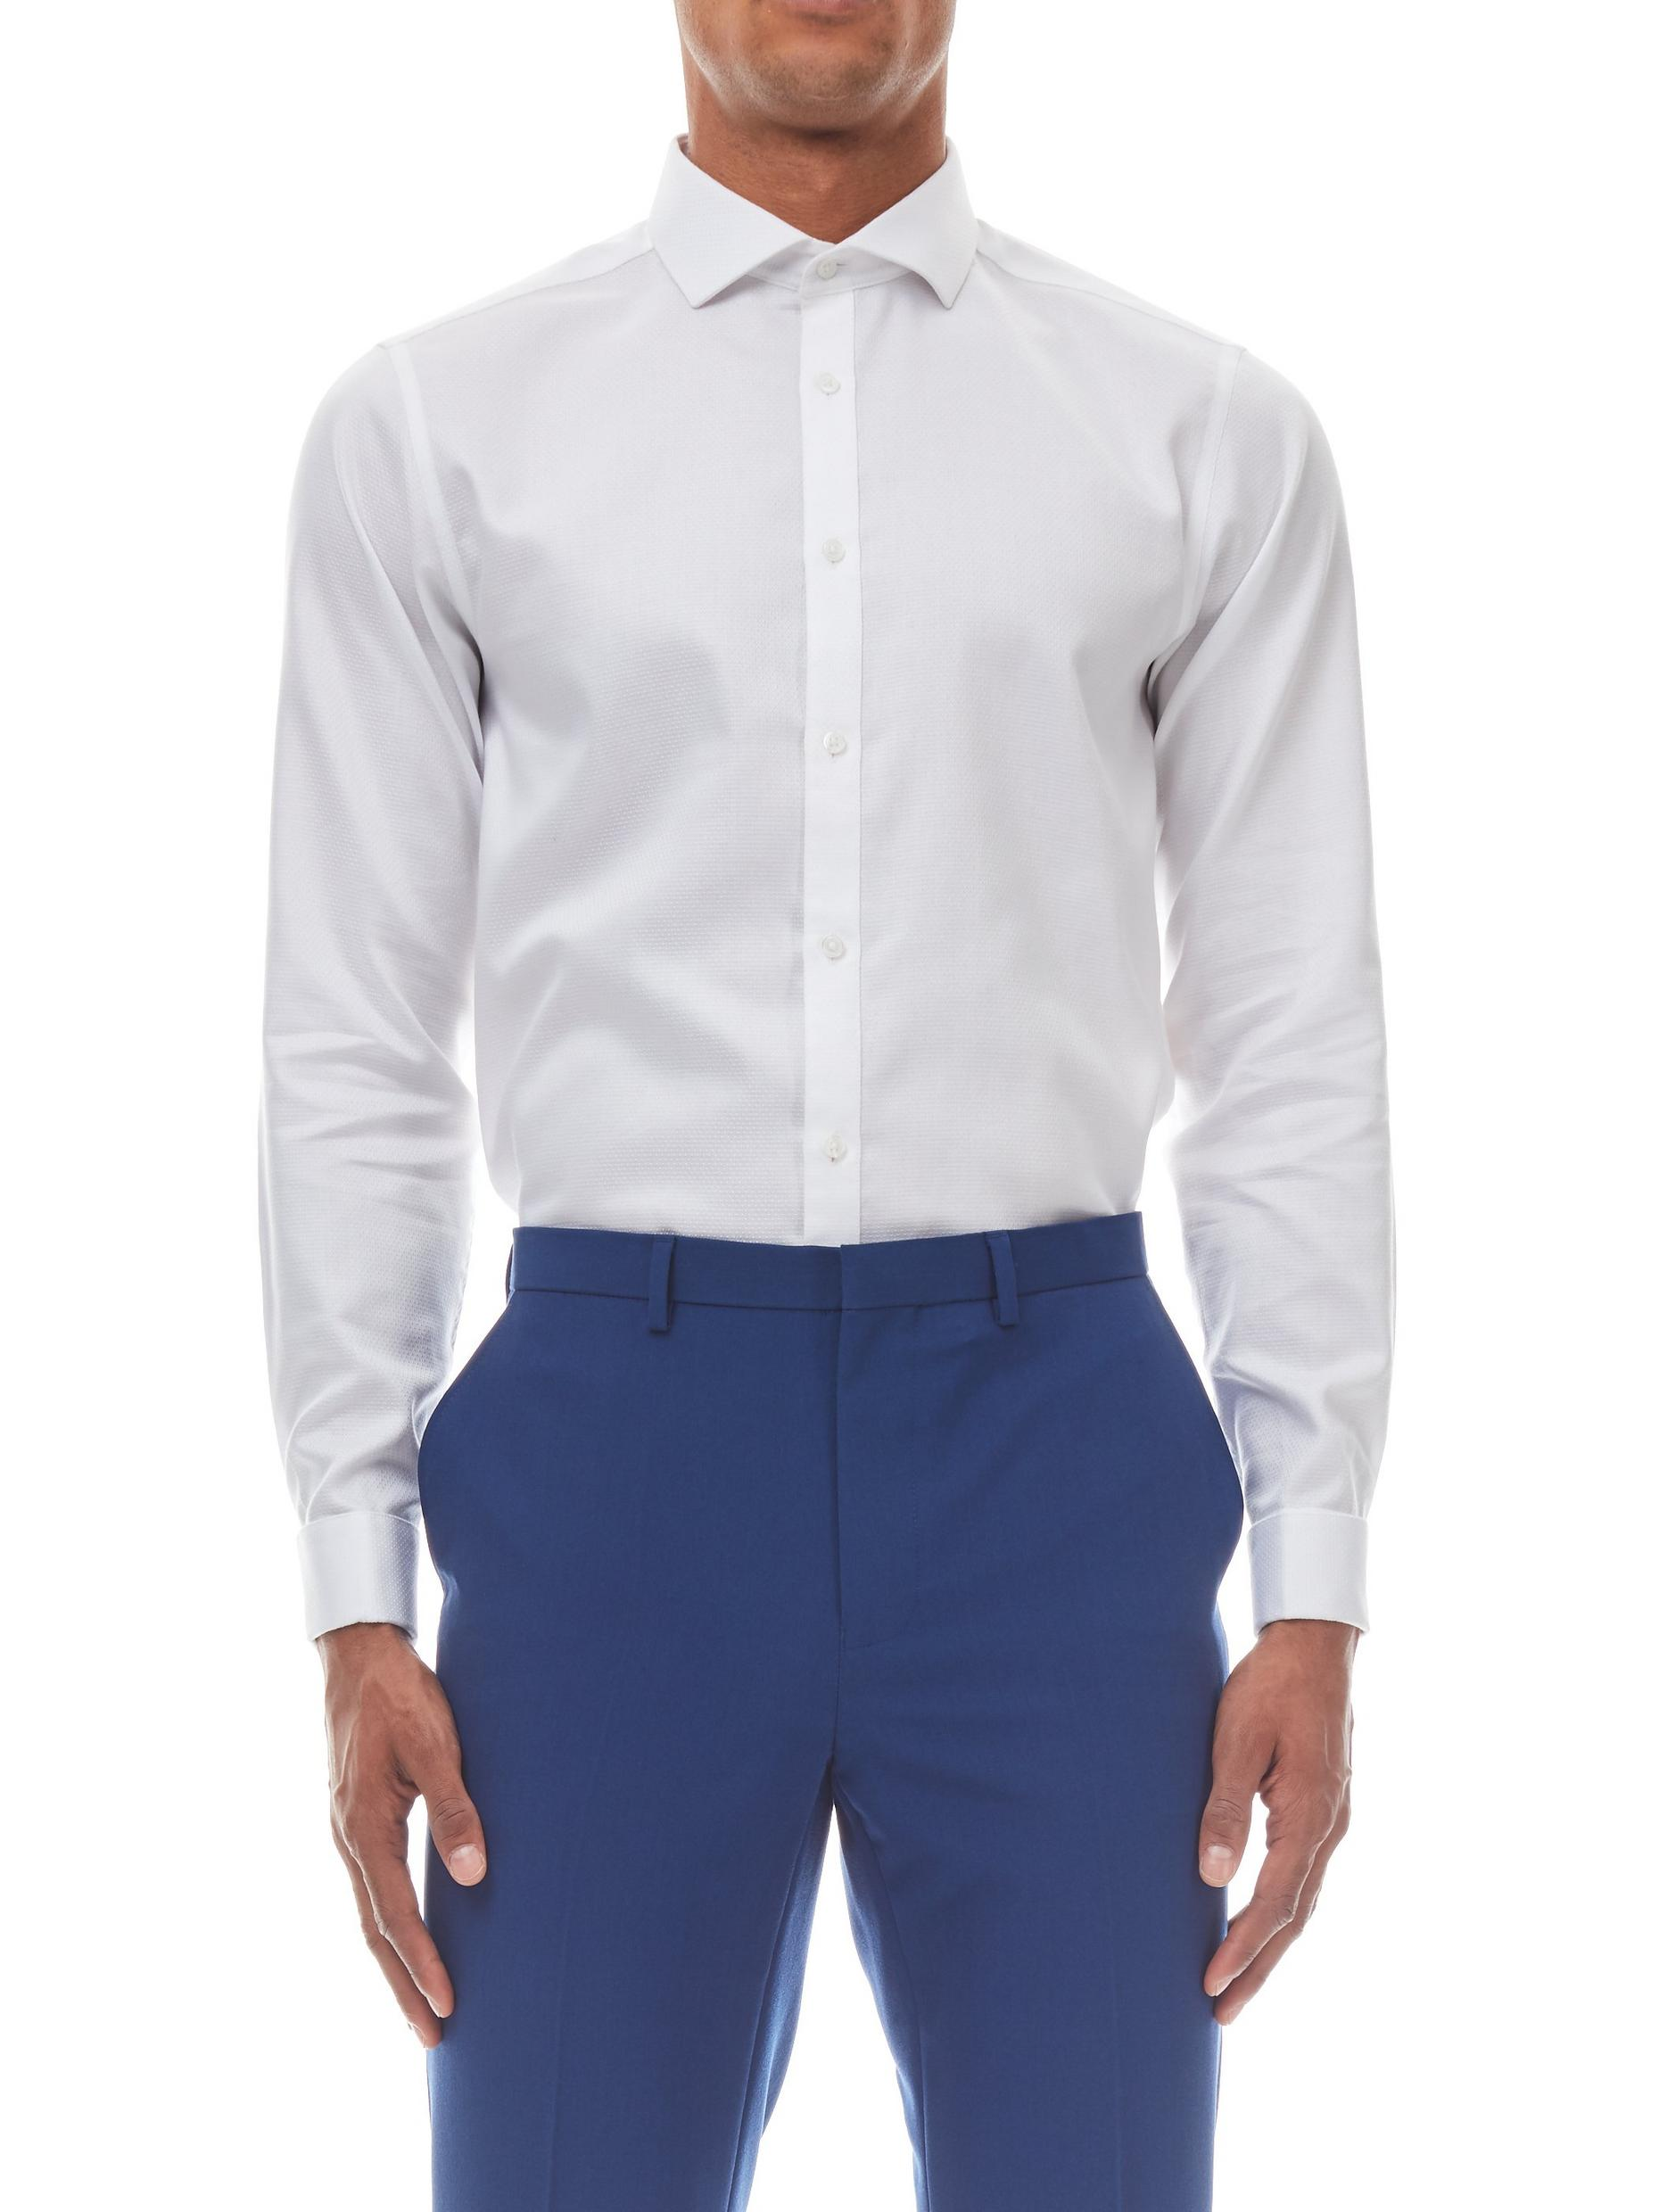 White Tailored Fit Diamond Textured Shirt